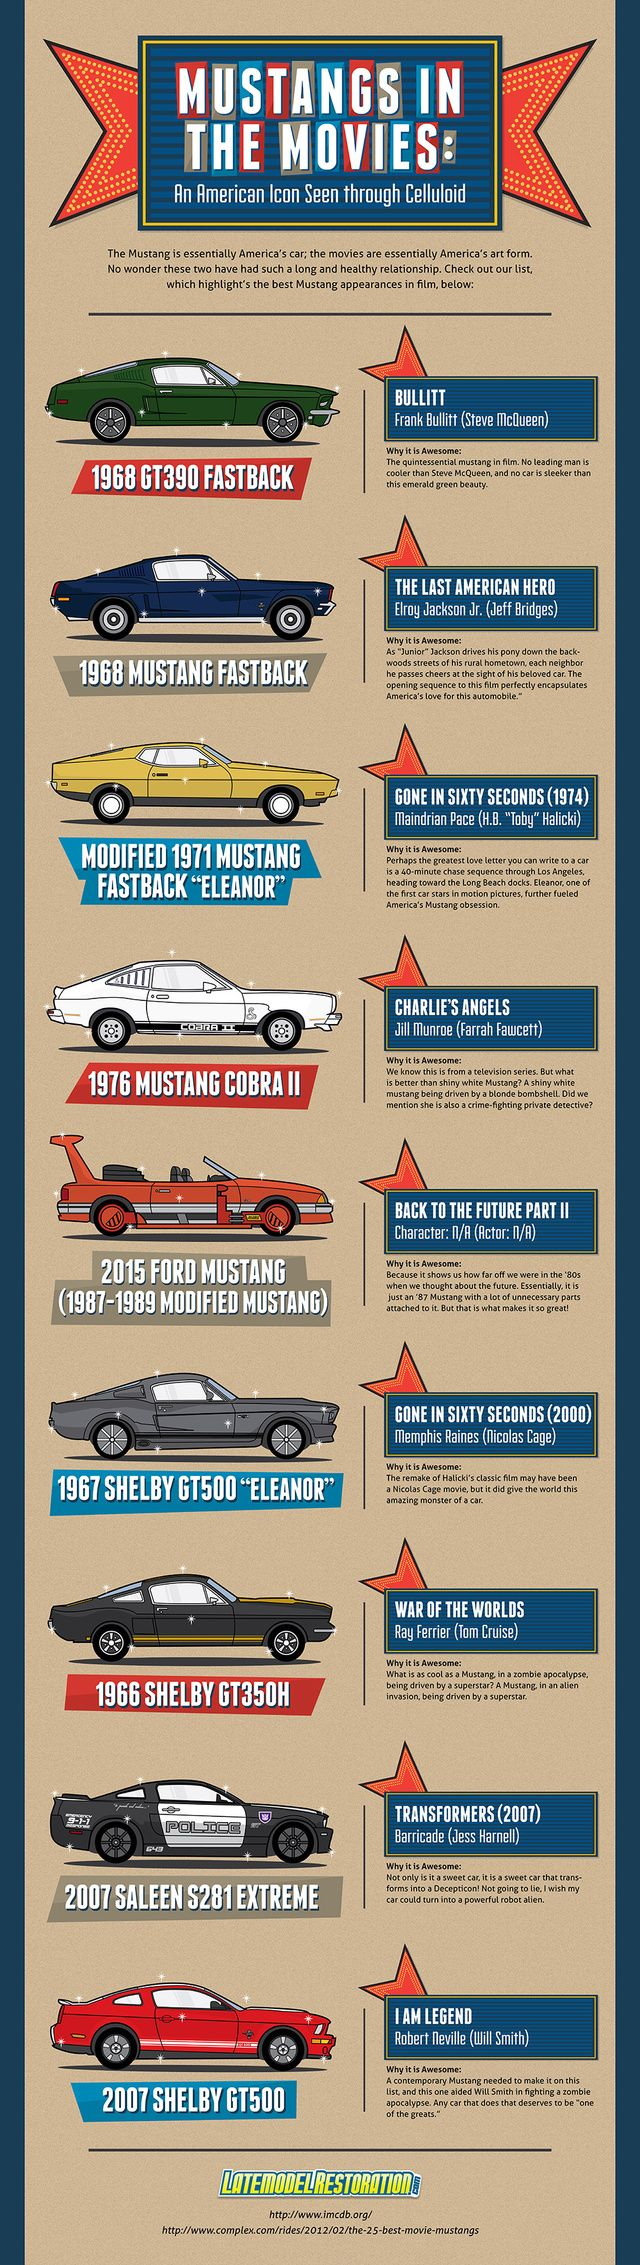 The Ford Mustang Sure Has Been In A Lot Of Movies